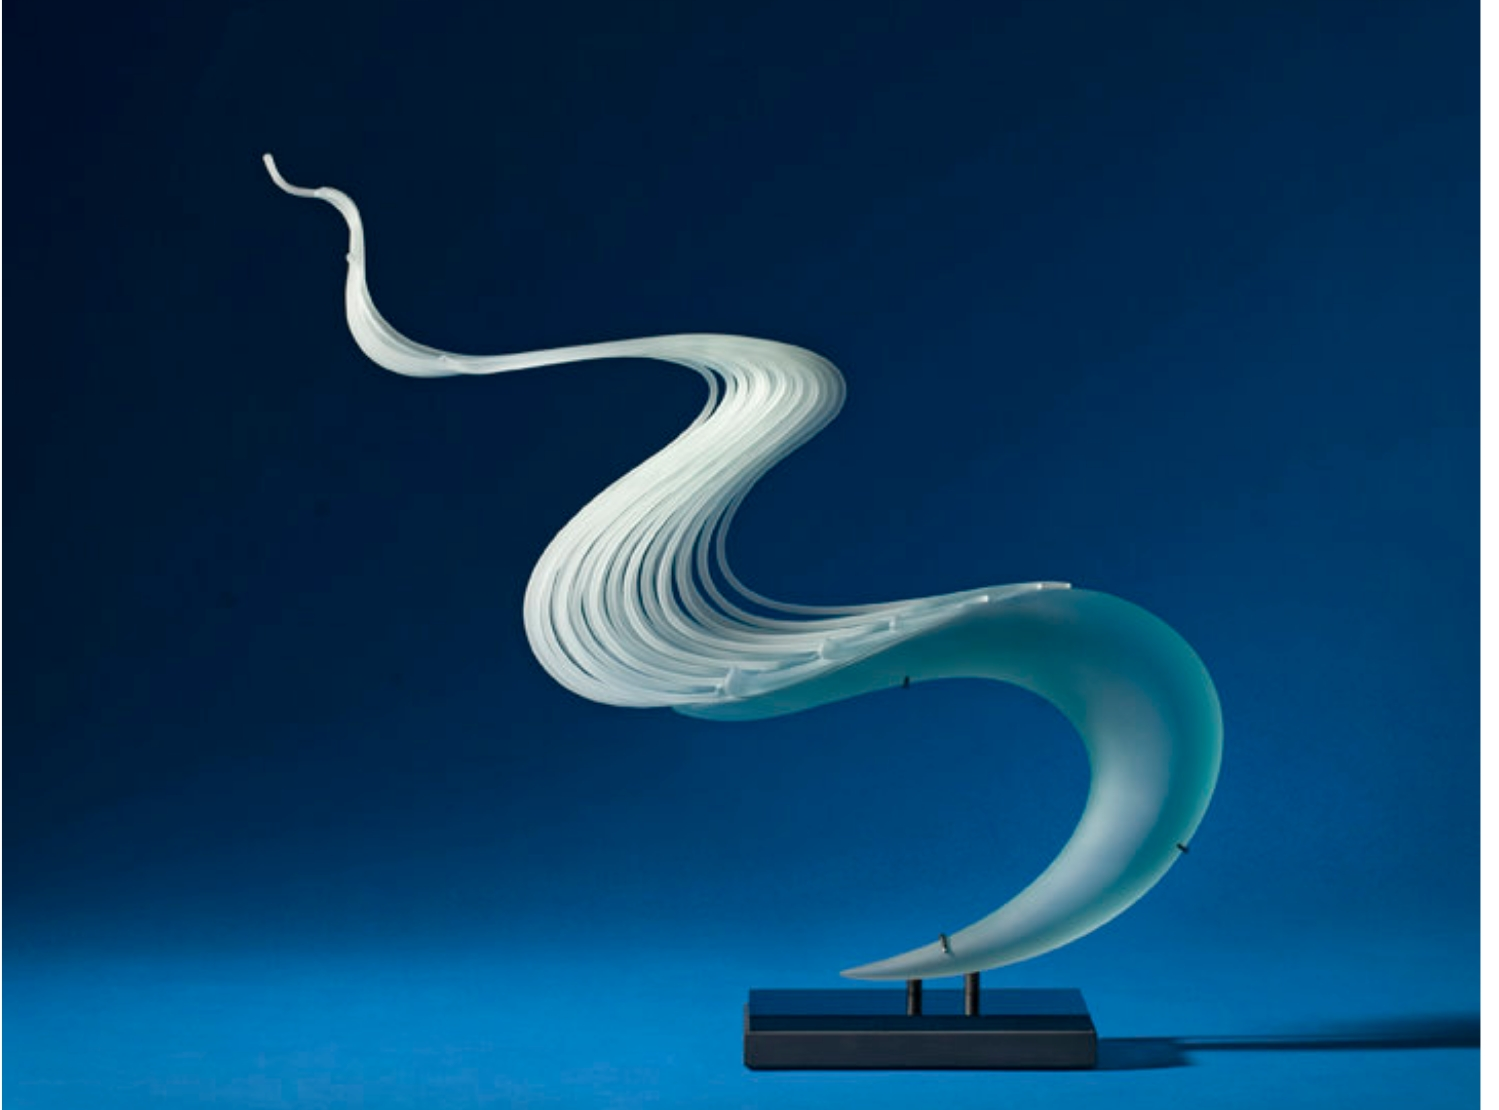 Carved and laminated plate glass sculpture by William LeQuier